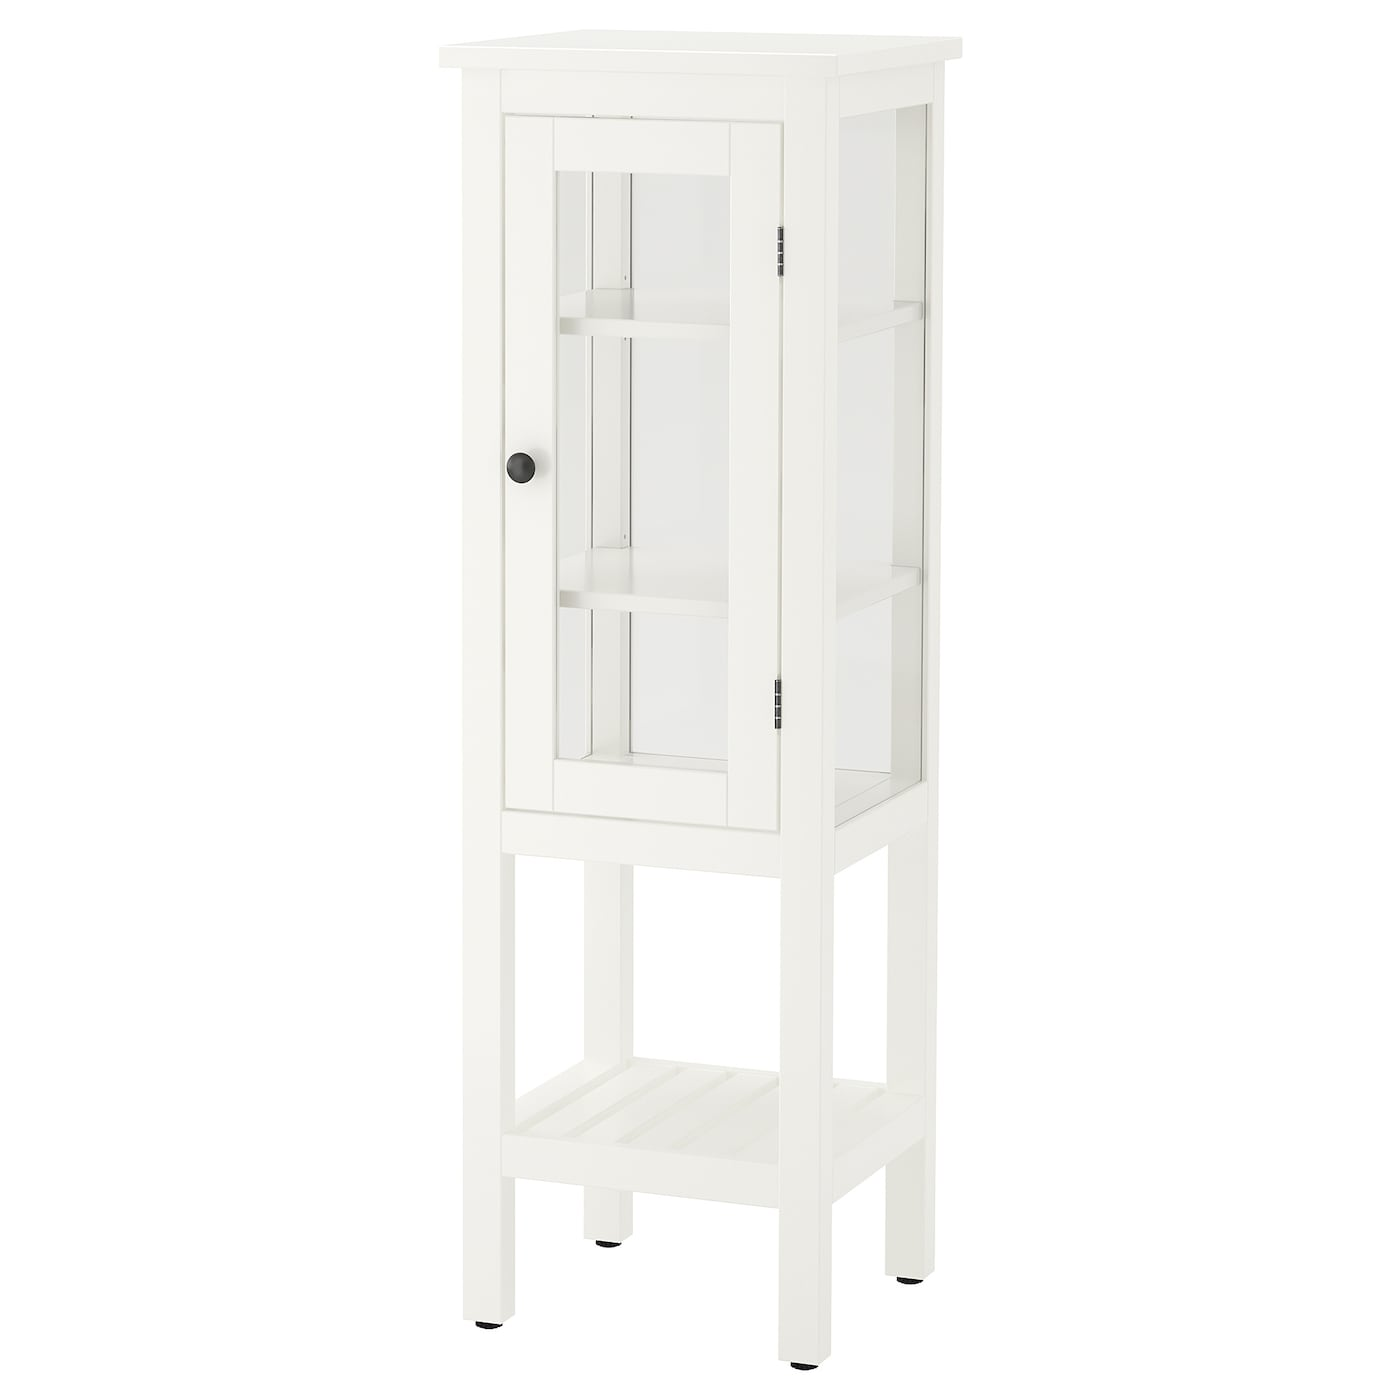 IKEA HEMNES high cabinet with glass door Perfect in a small bathroom.